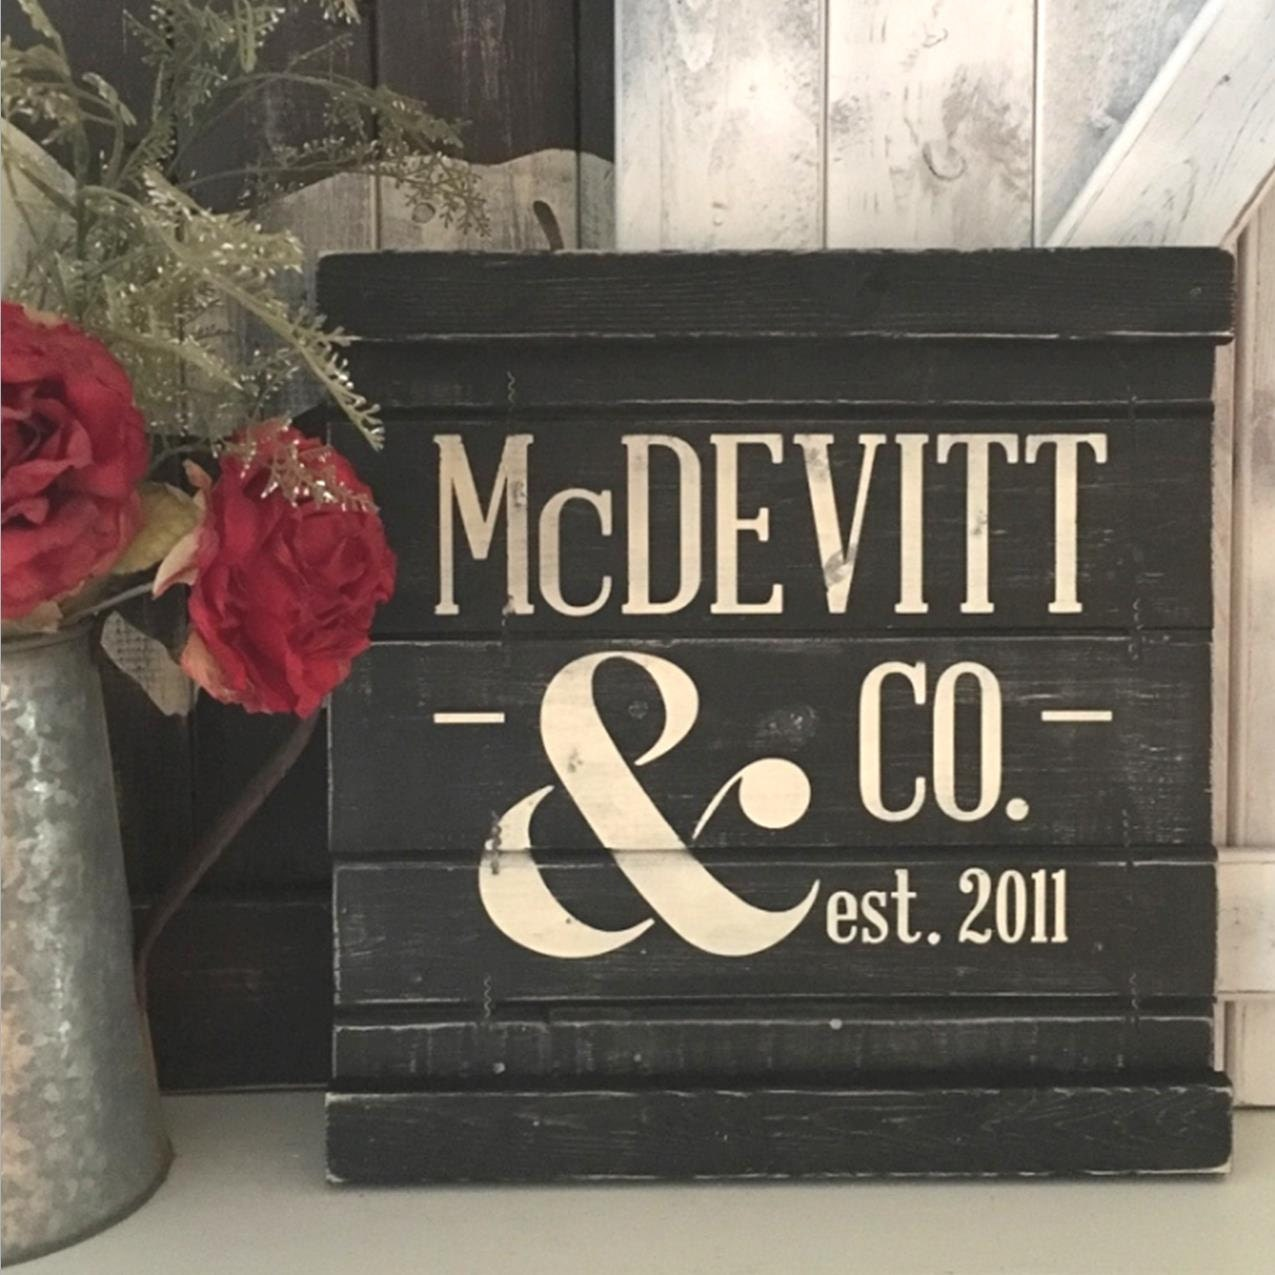 5th Wedding Anniversary Traditional Gifts: 5th WEDDING ANNIVERSARY GIFT 5th Anniversary By